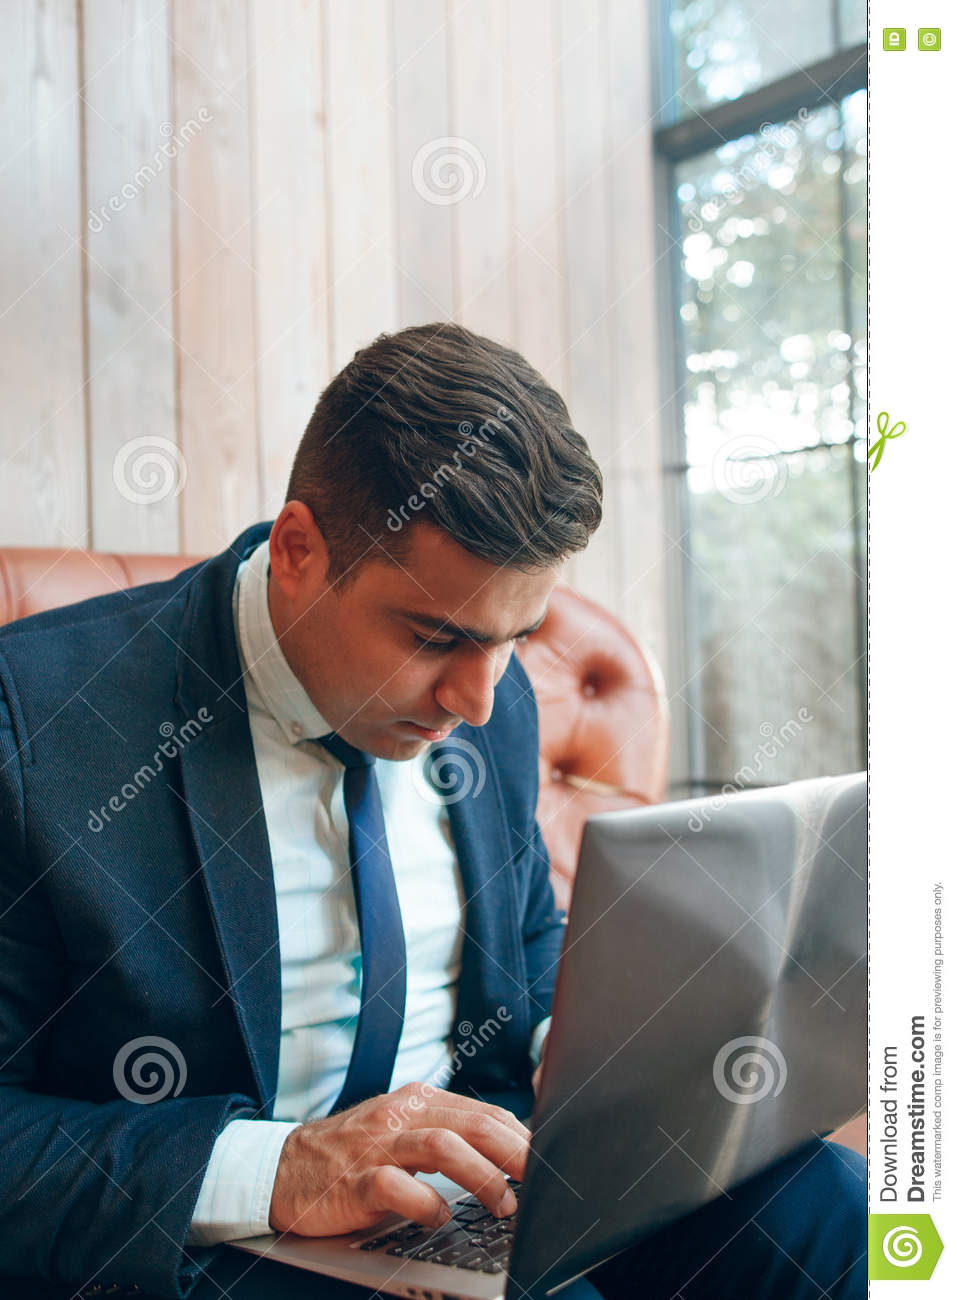 Man searching for information online